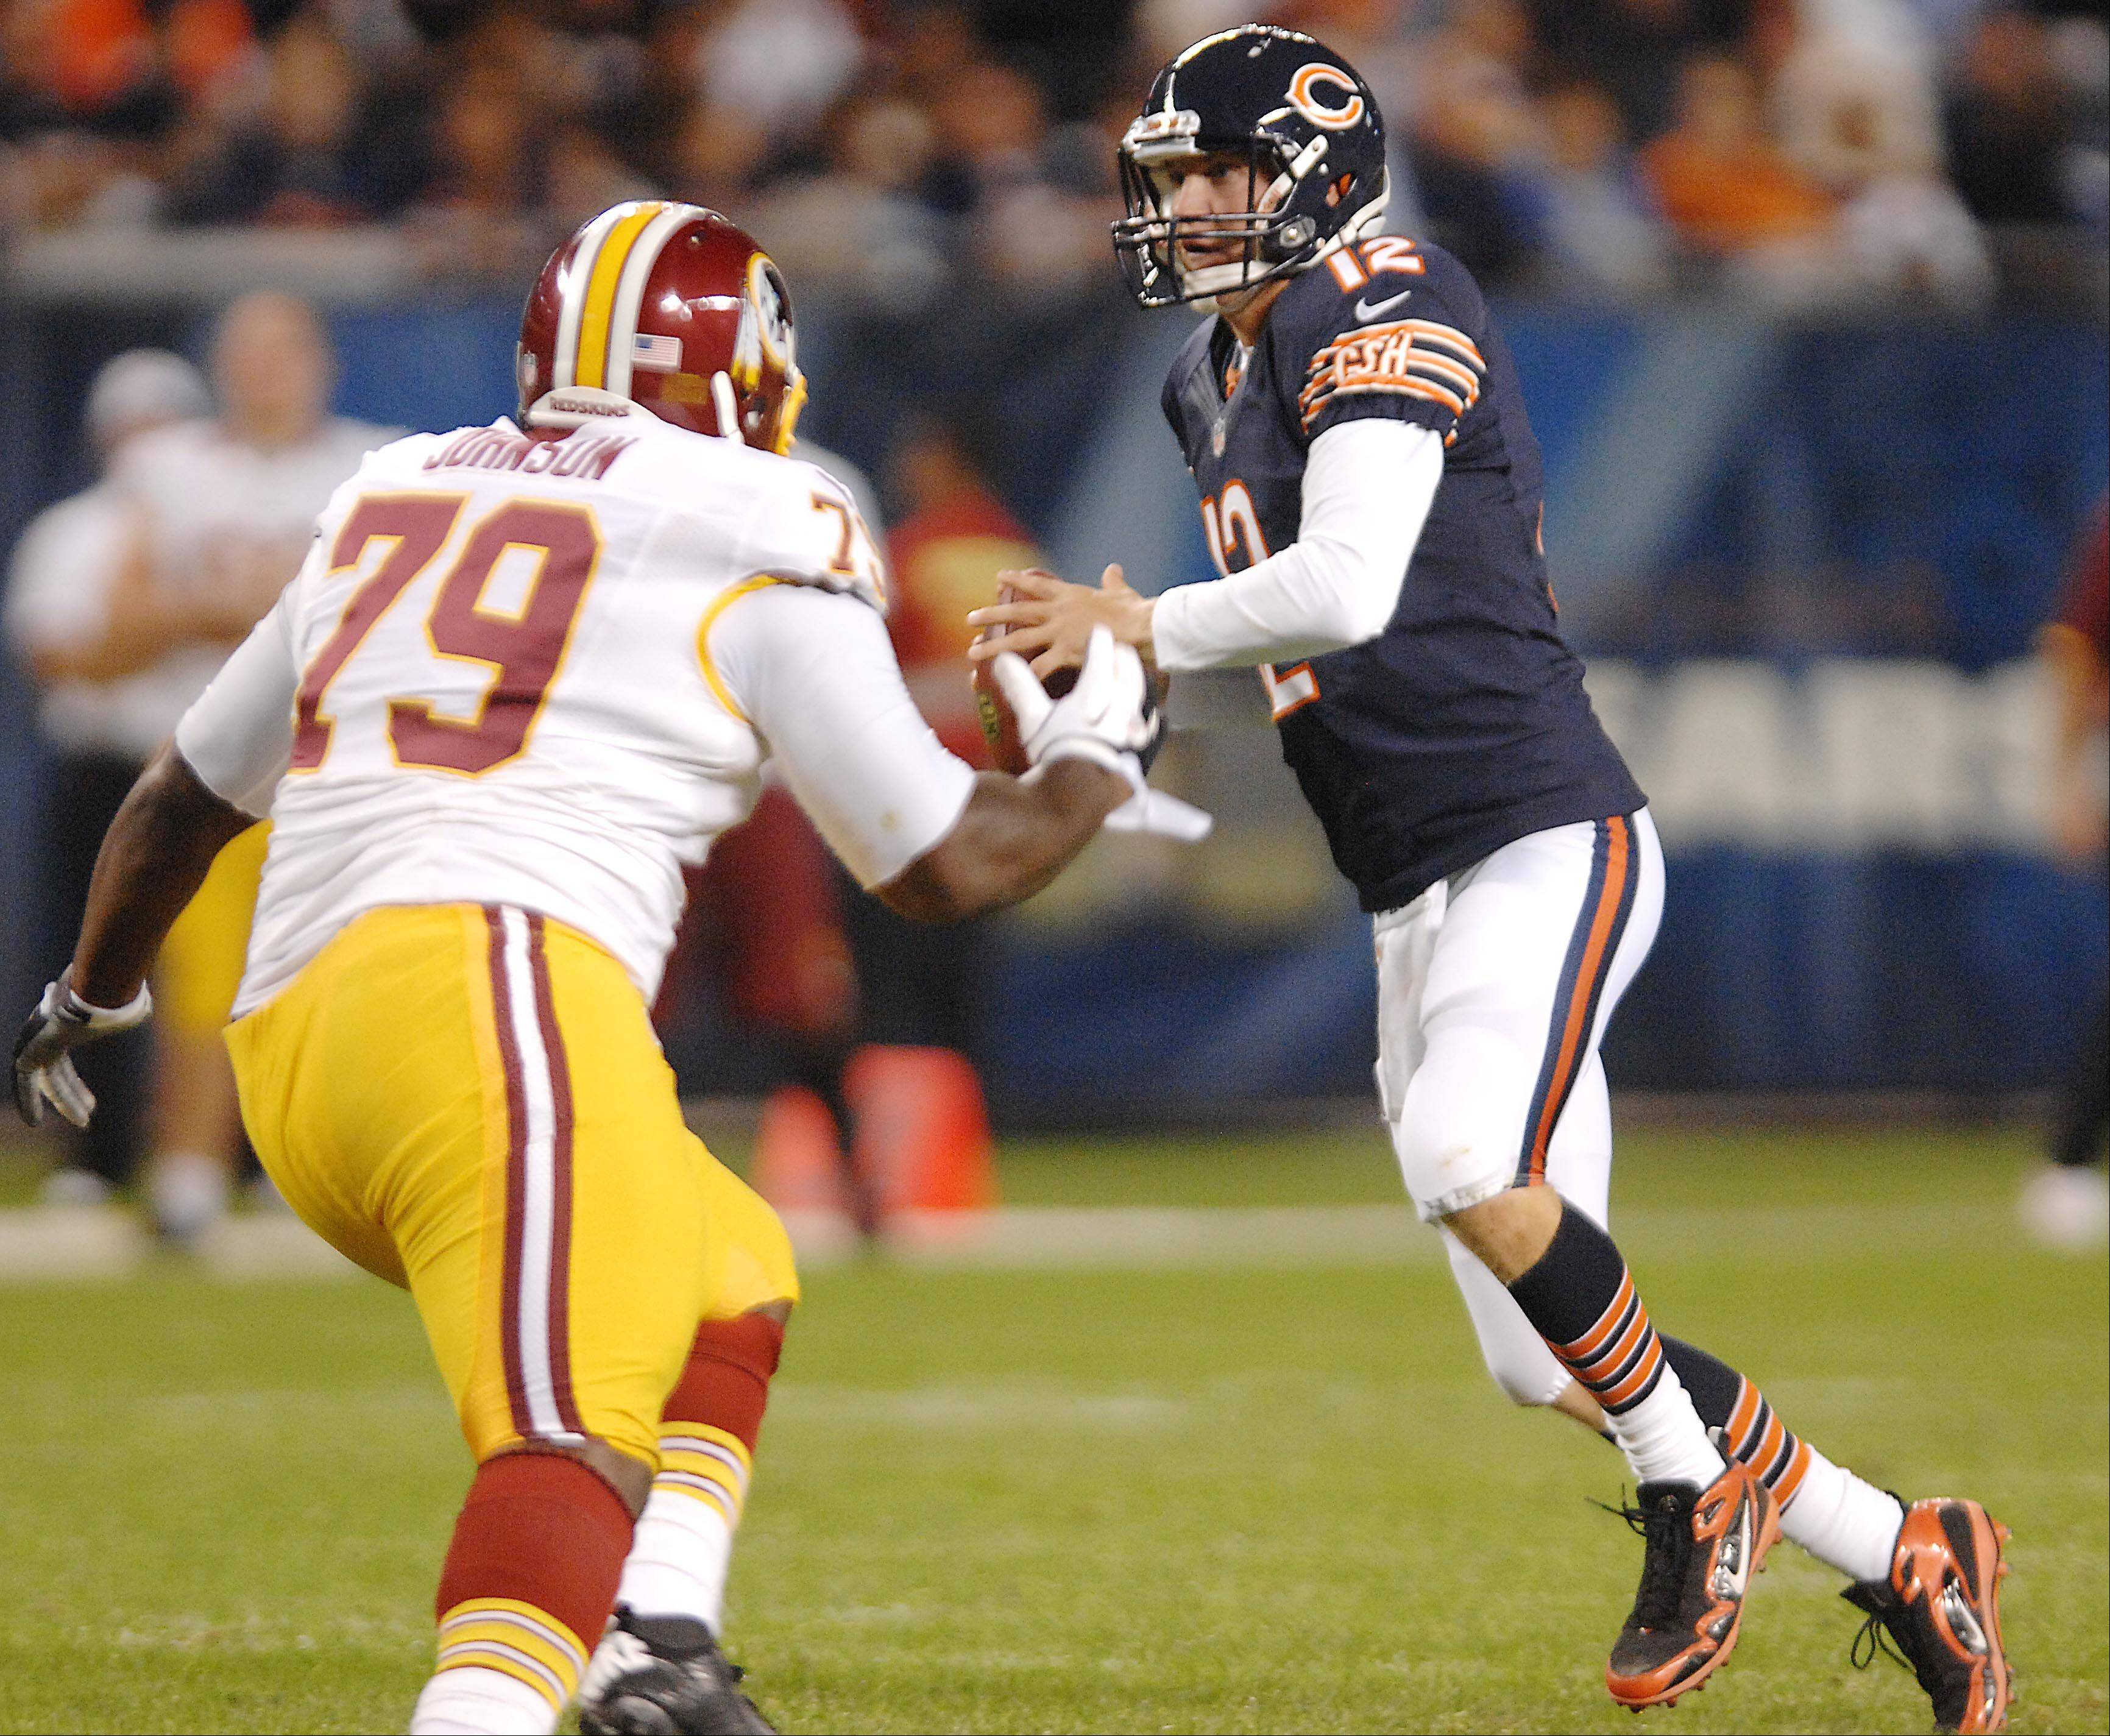 Chicago Bears quarterback Josh McCown looks for a receivers as Washington Redskins offensive guard Maurice Hurt charges Saturday in the second preseason game at Soldier Field in Chicago.